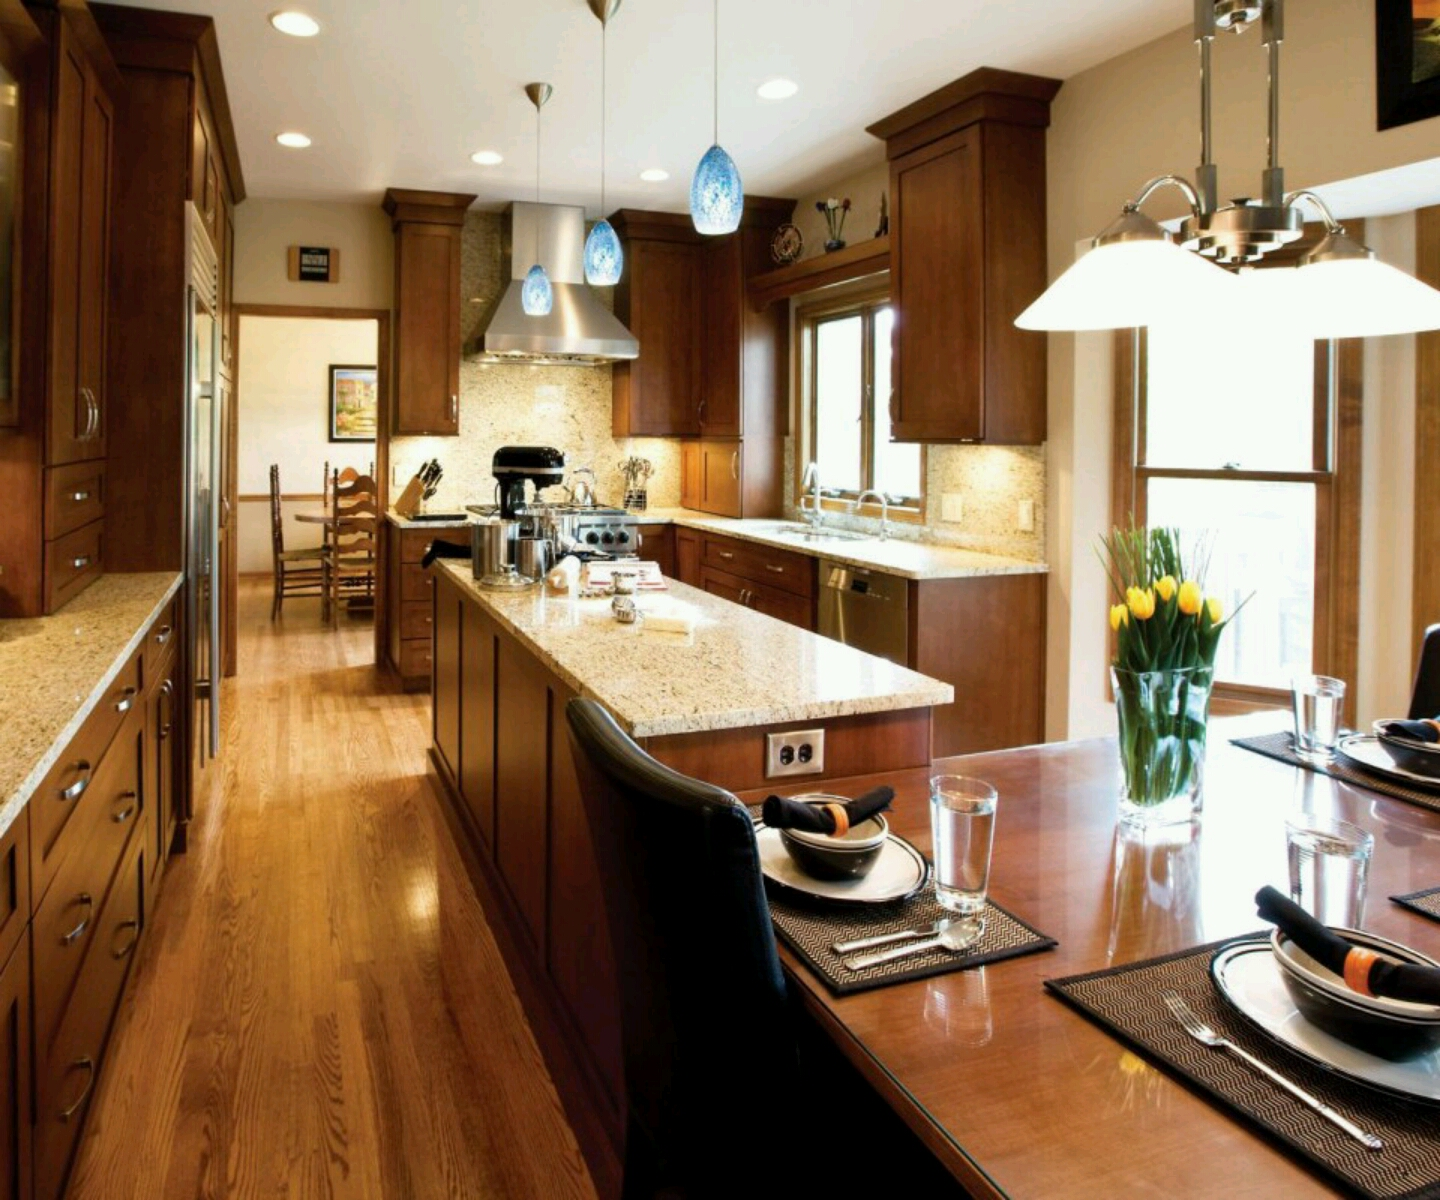 New home designs latest kitchen cabinets designs modern for New kitchen cabinets